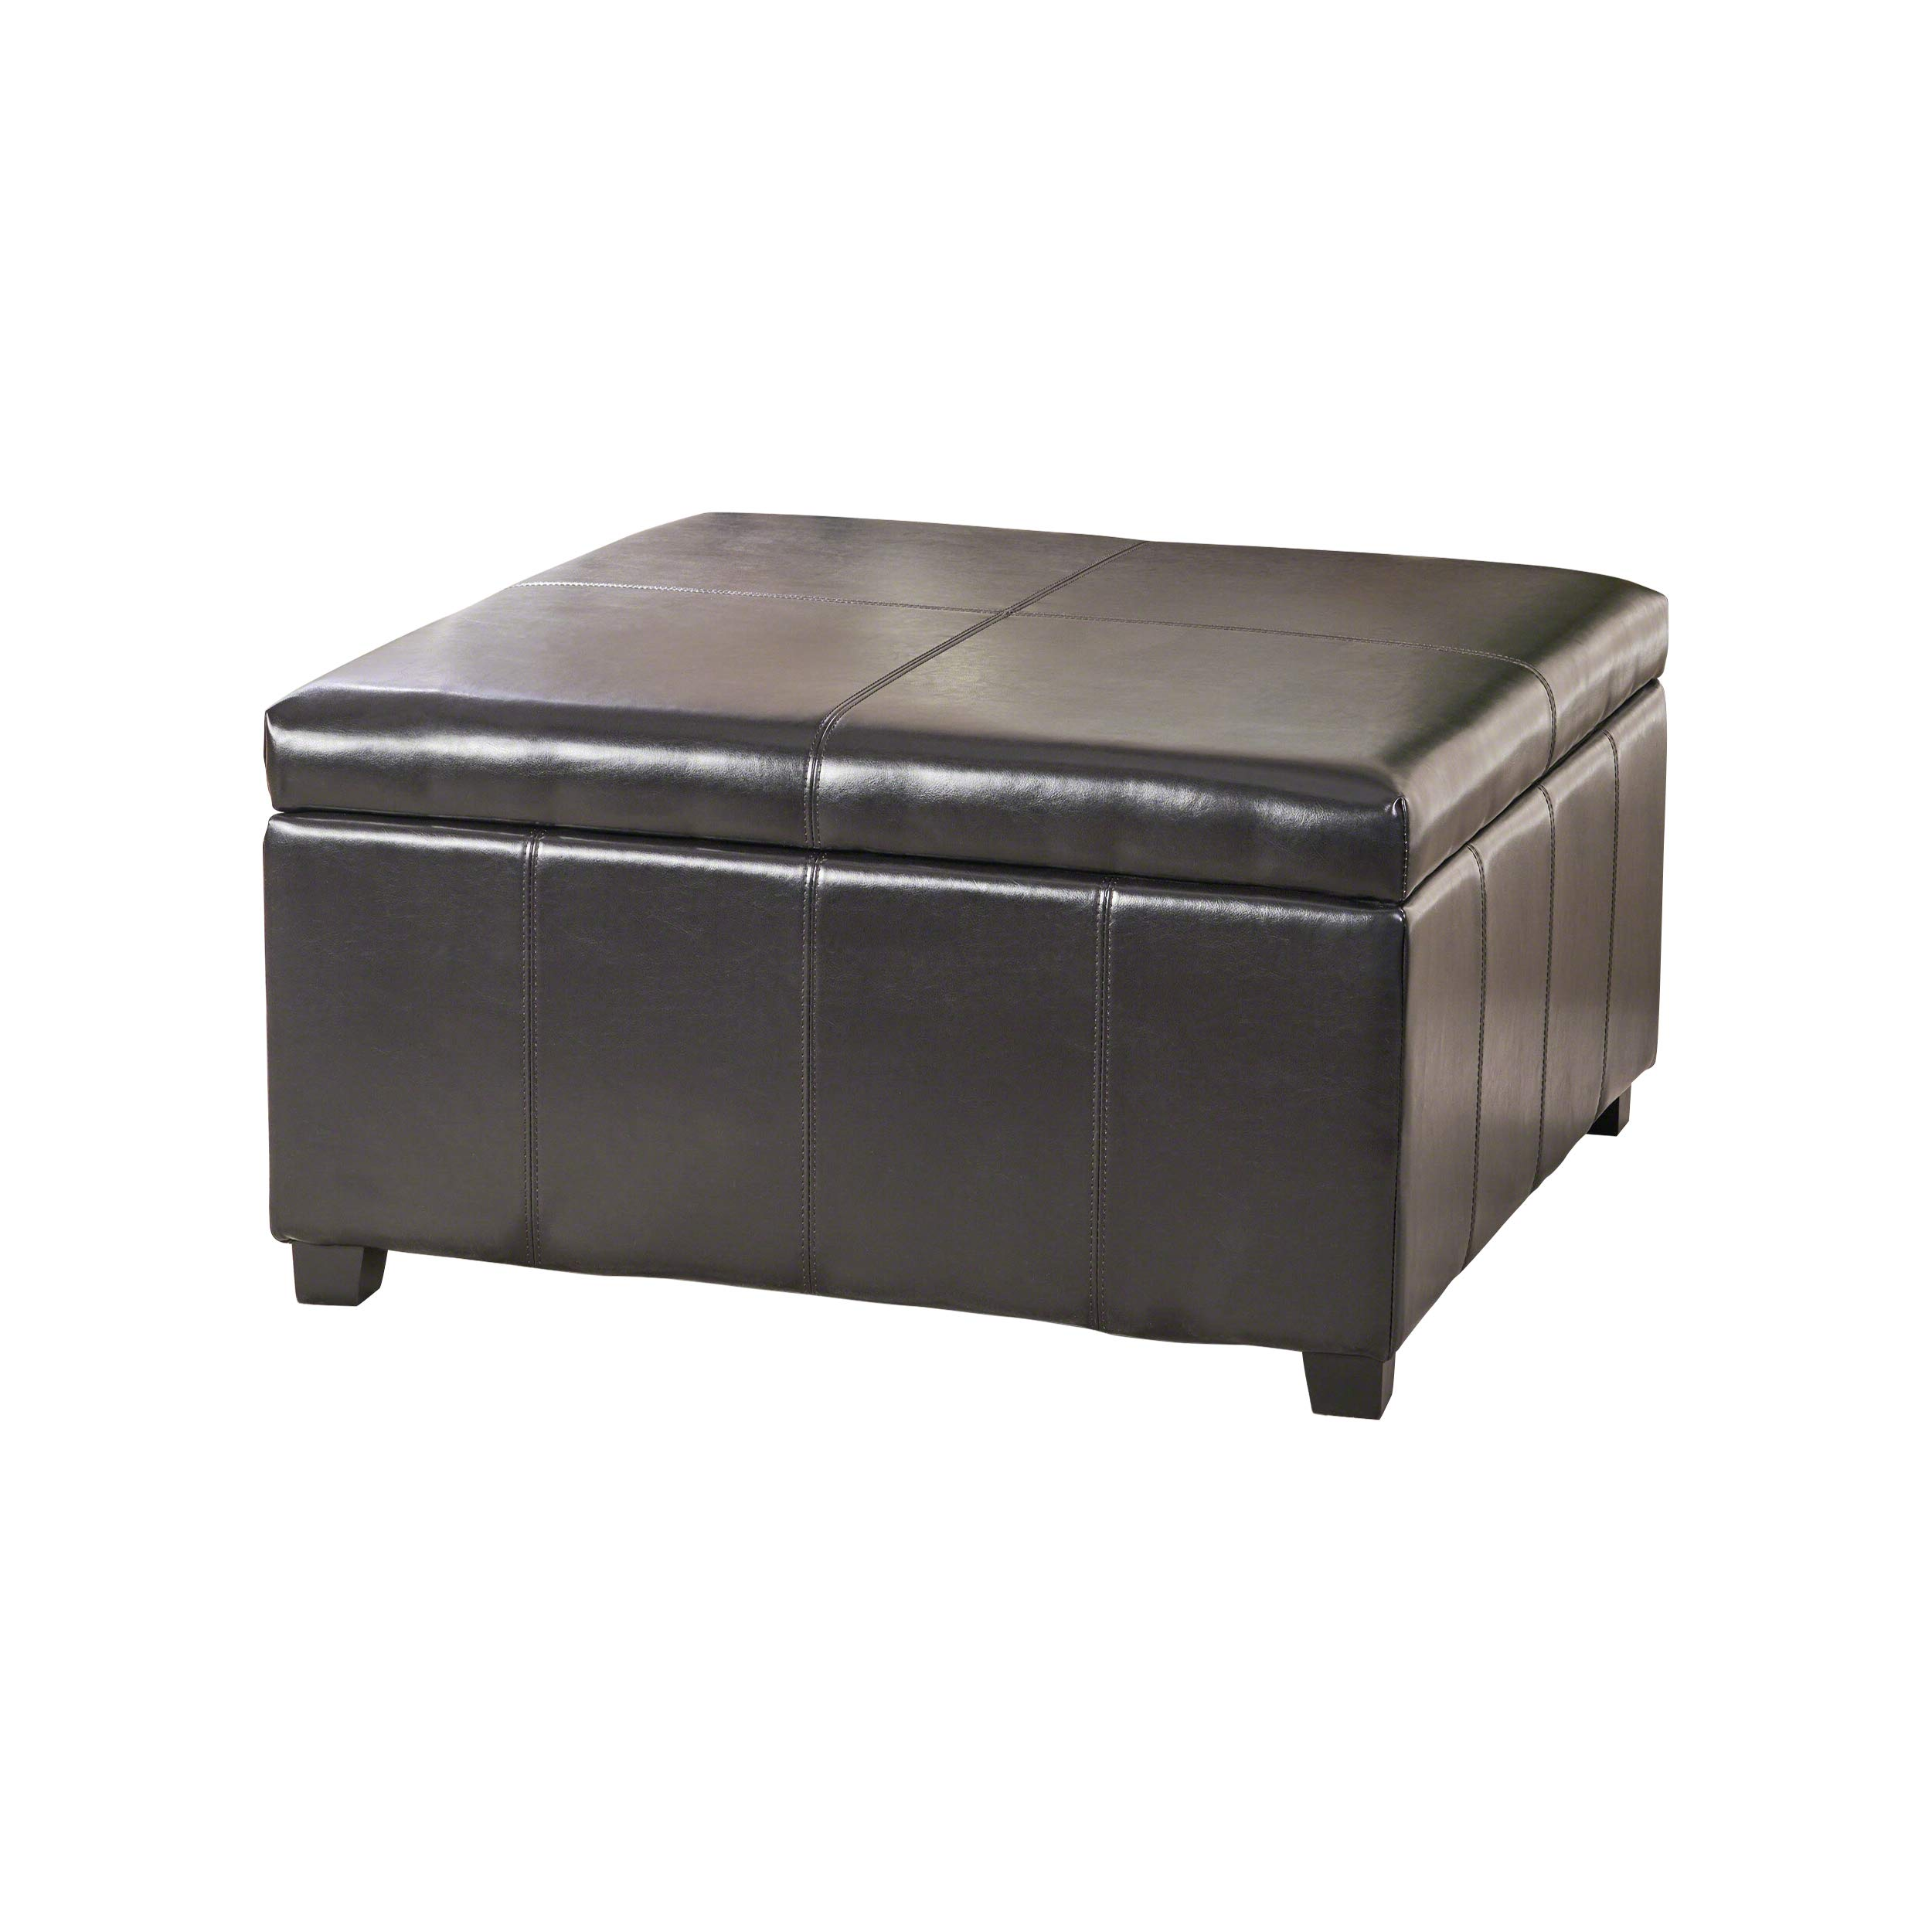 Christopher Knight Home Living Berkeley Brown Leather Square Storage Ottoman, Espresso by Christopher Knight Home